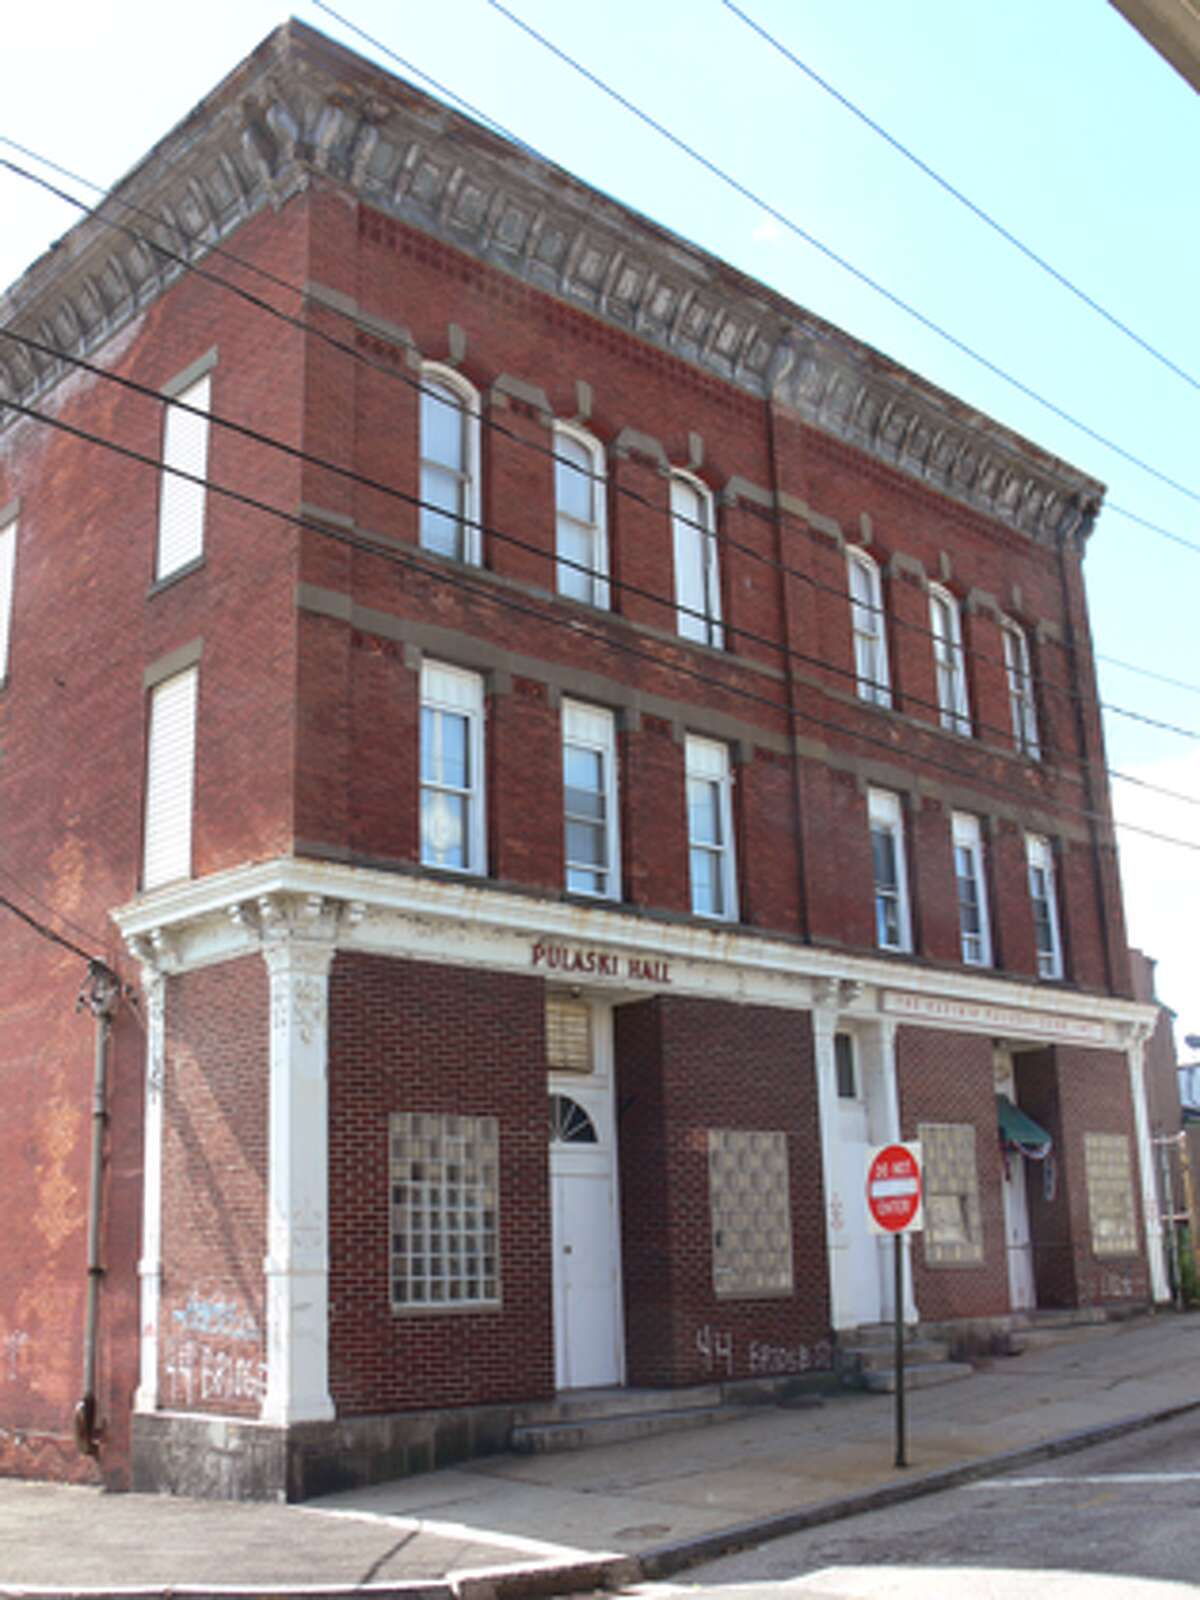 Developer Angelo Melisi hopes to purchase and demolish the Polish Club building to make way for the project.